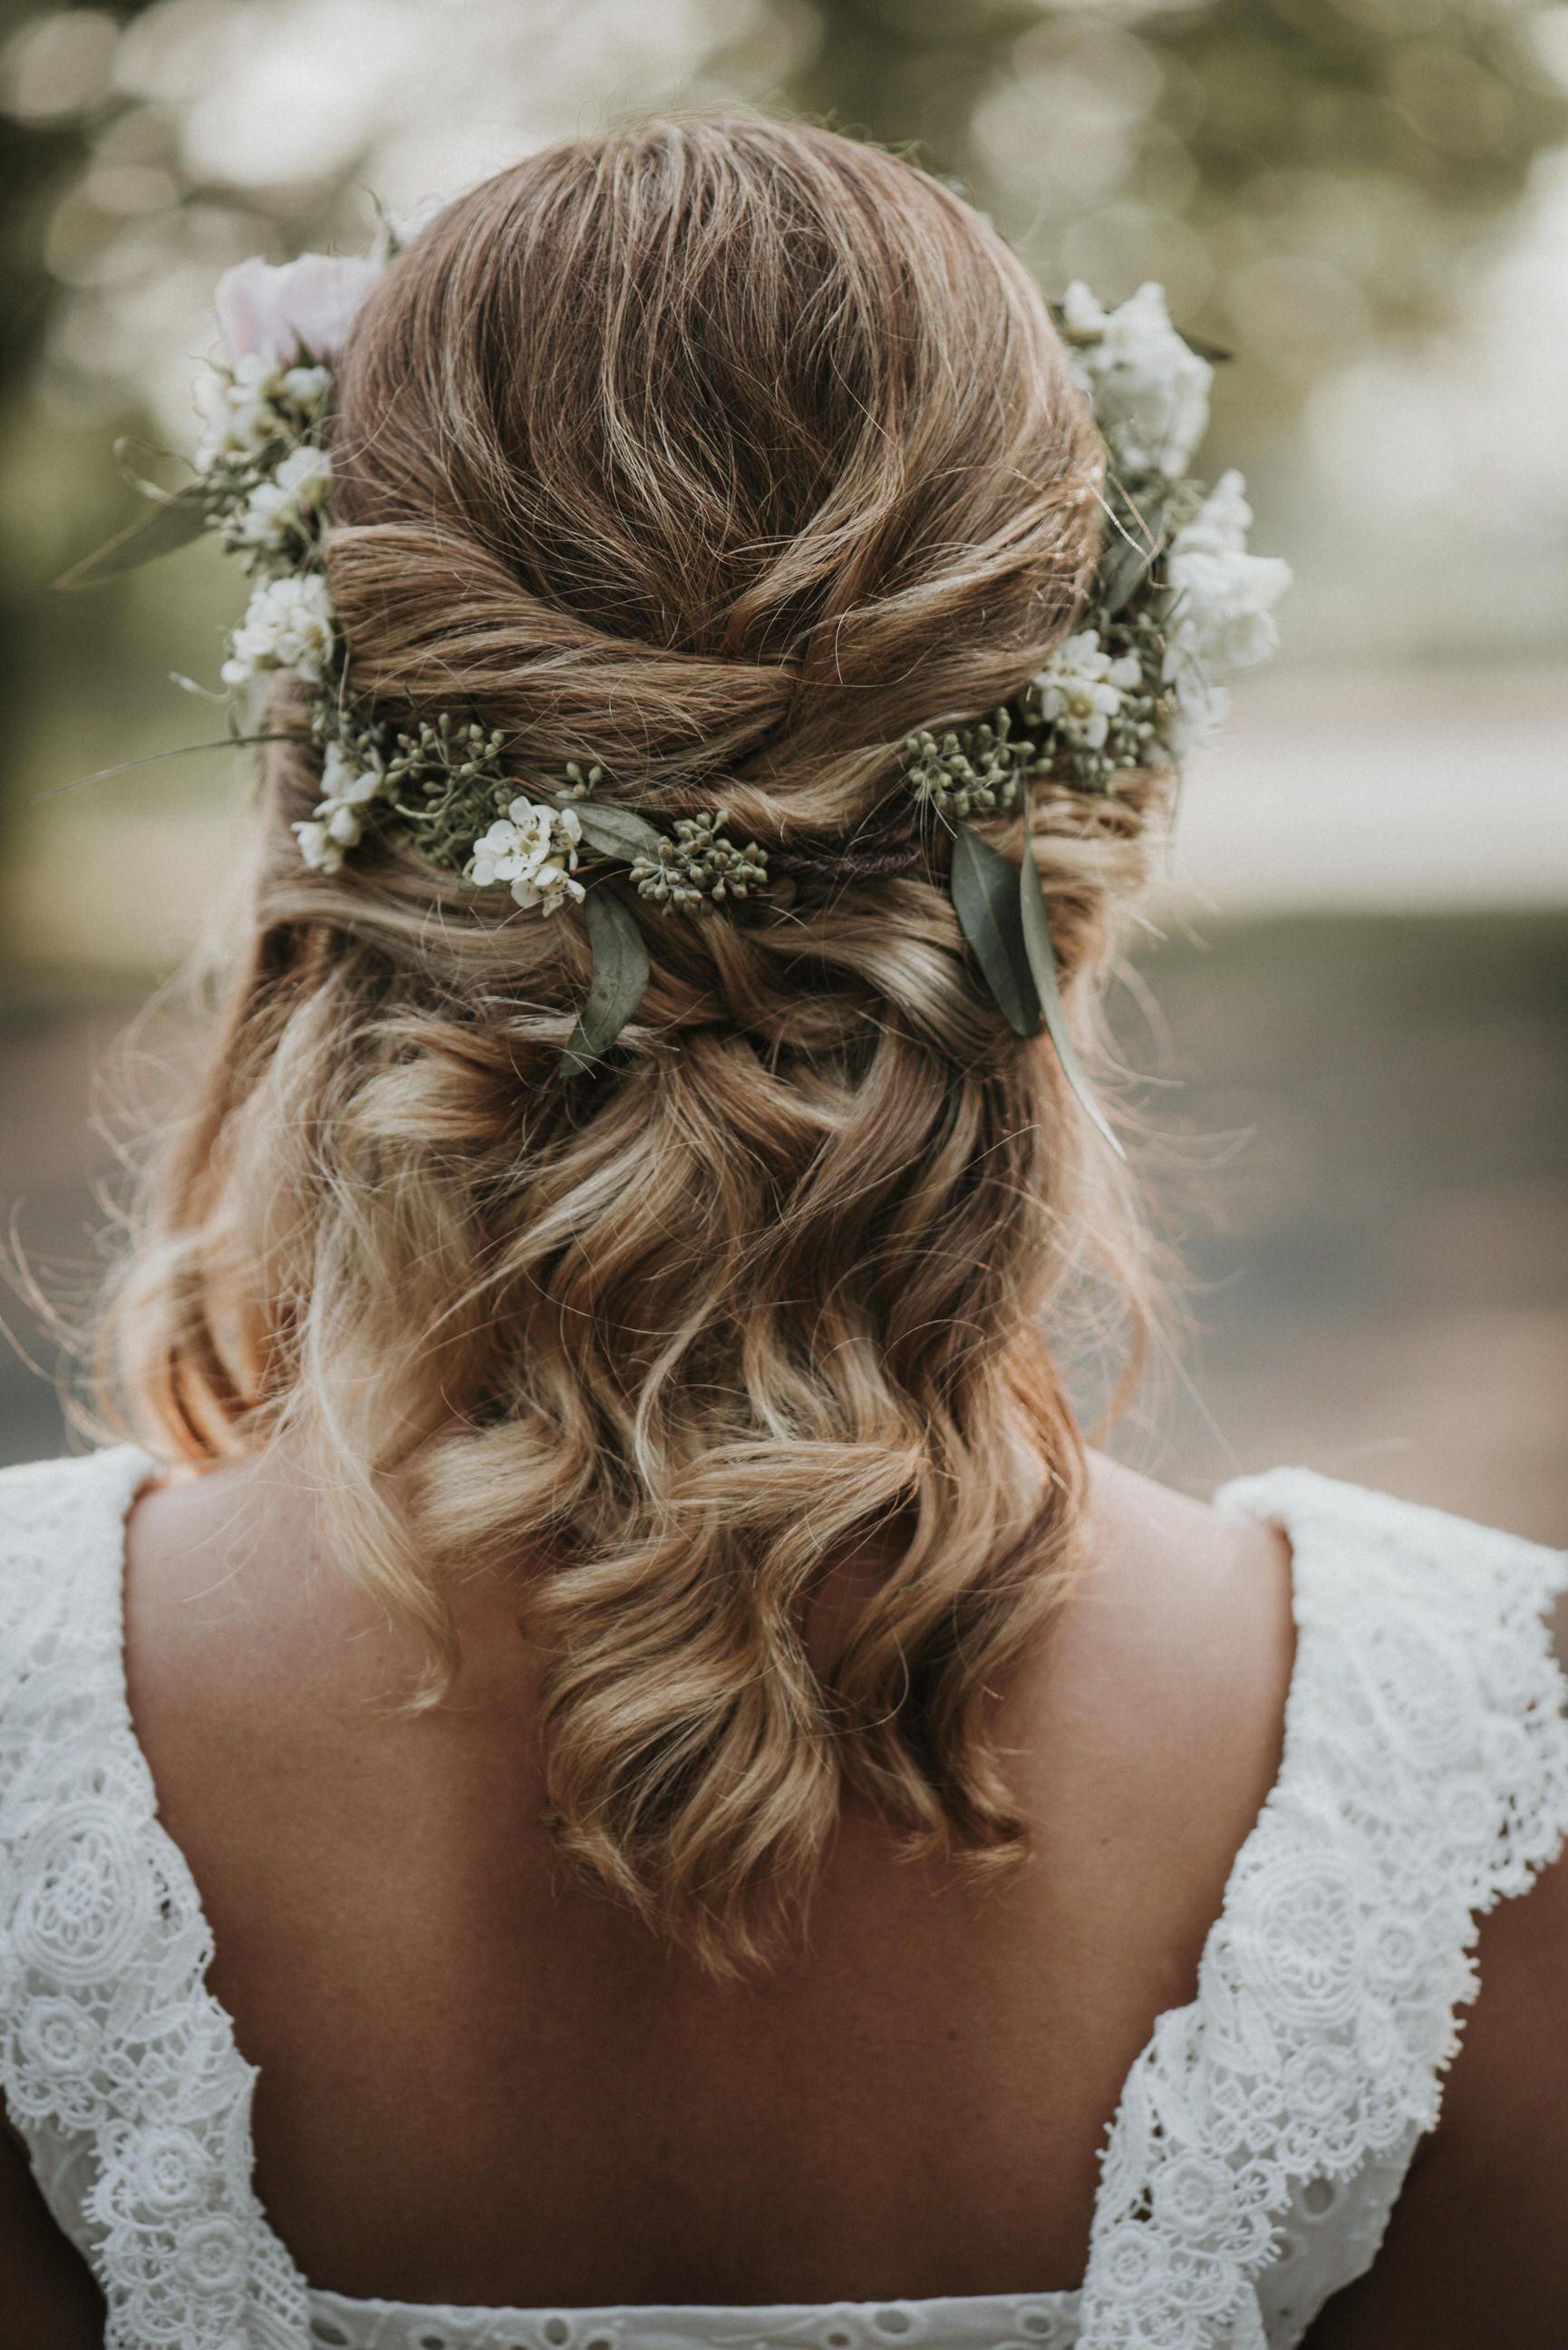 Intimate Ottawa Elopement Cindy Lottes Photography Wedding Hairstyles With Crown Flower Crown Hairstyle Wedding Hairstyles